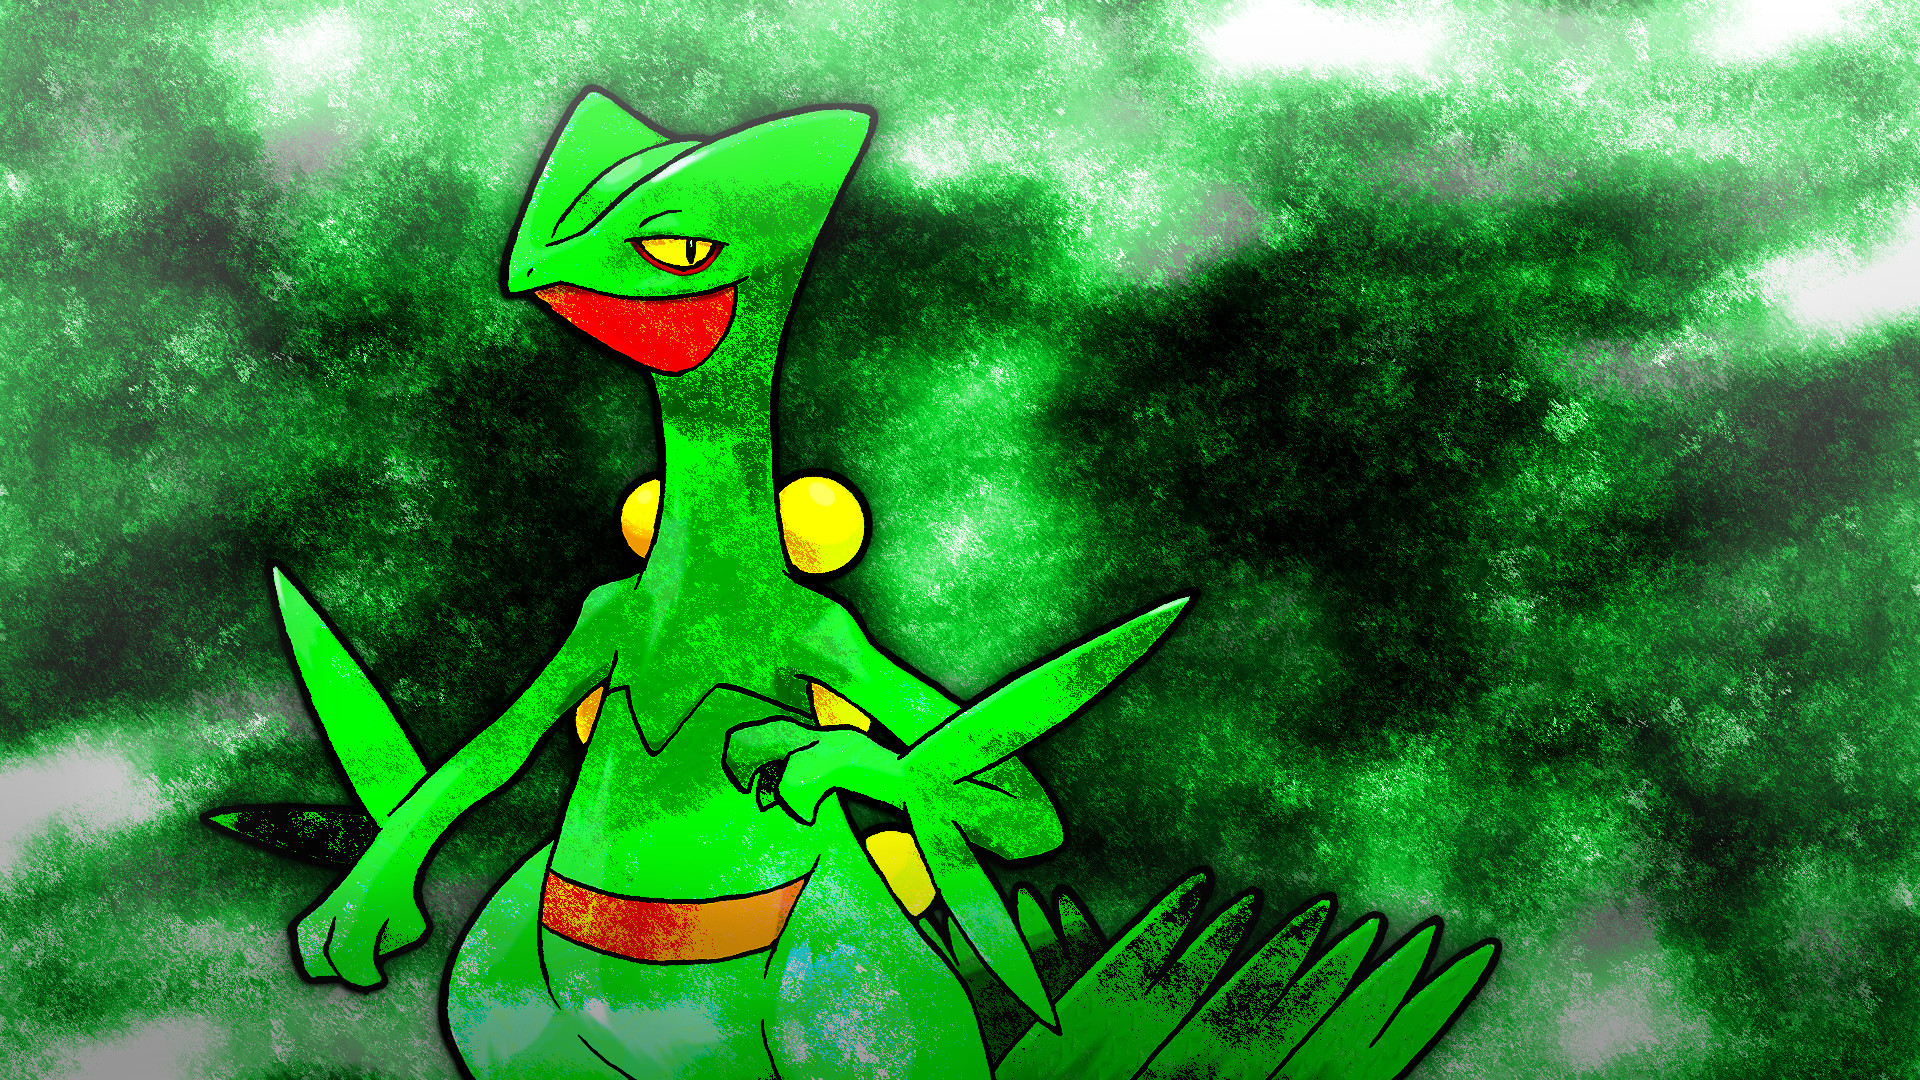 1920x1080 ... 12 Sceptile (Pokémon) HD Wallpapers | Backgrounds - Wallpaper Abyss ...